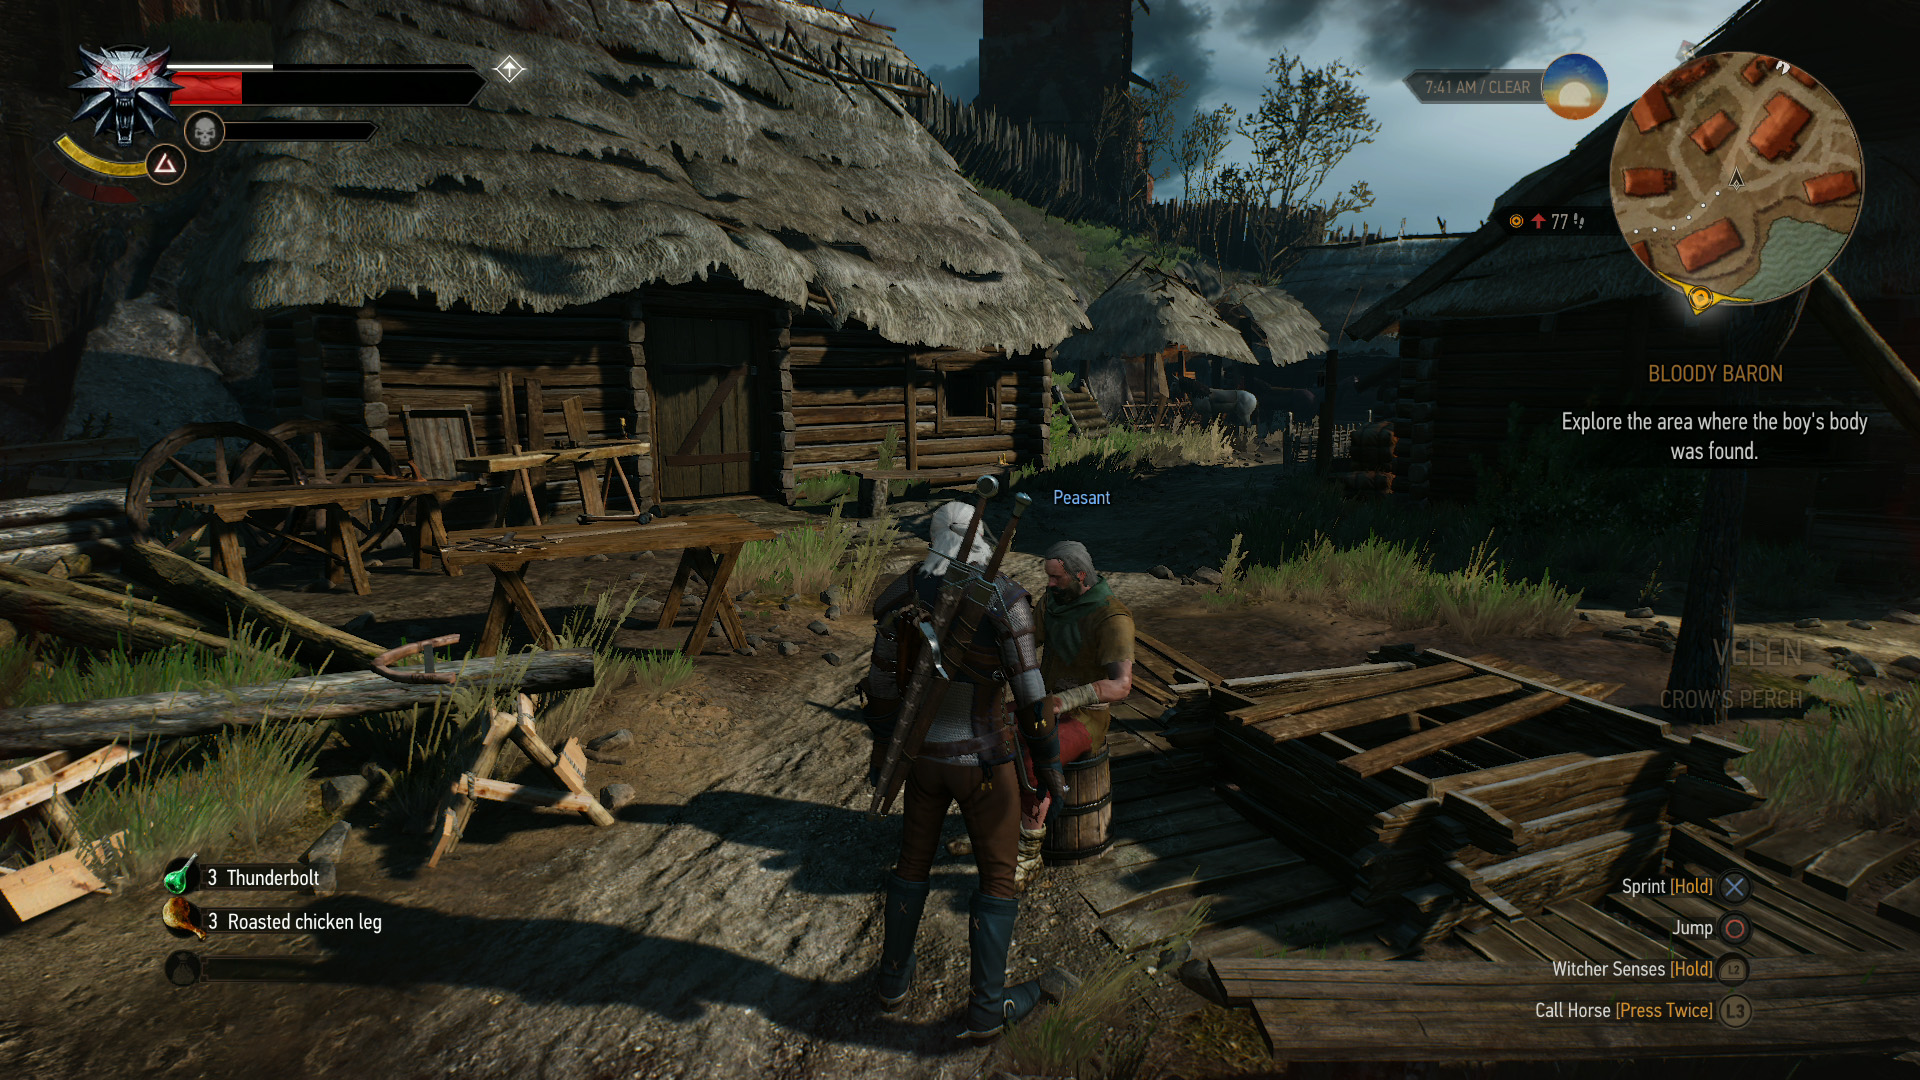 Here's what The Witcher 3 looks like at 4K on PS4 Pro • Eurogamer net